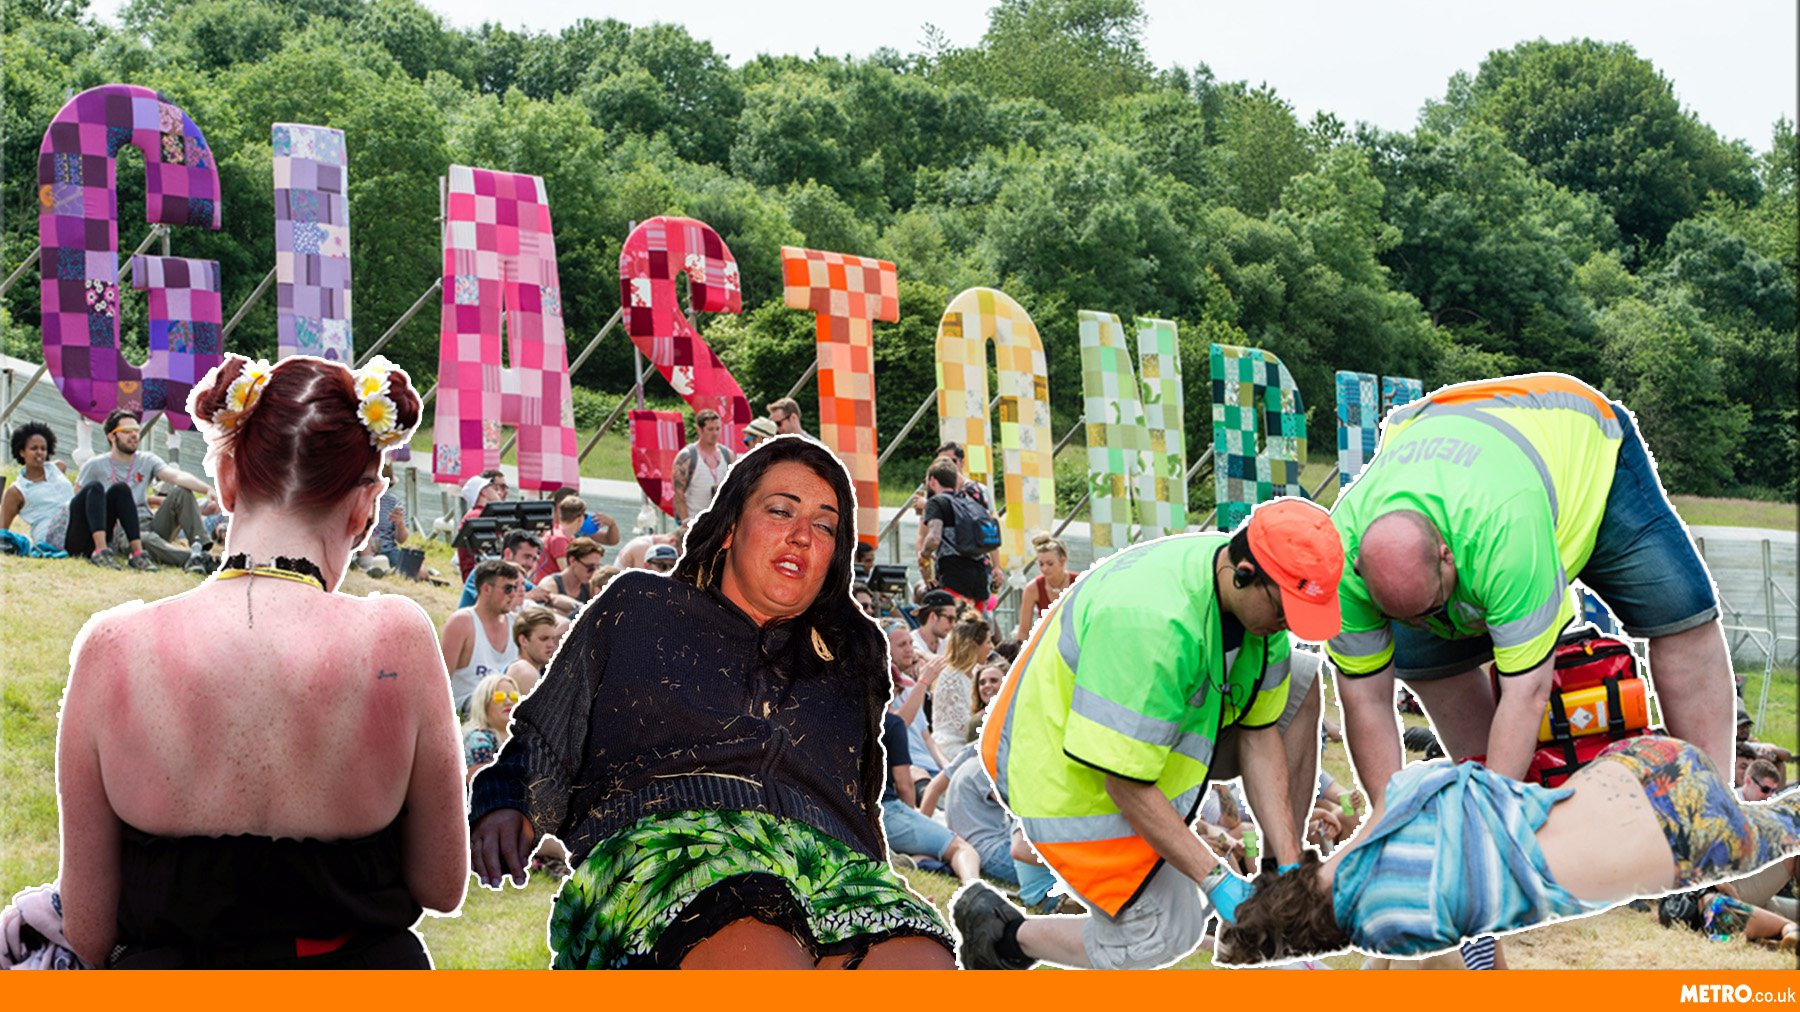 'I watched a guy who thought he was a slug': A Glastonbury Festival paramedic reveals all